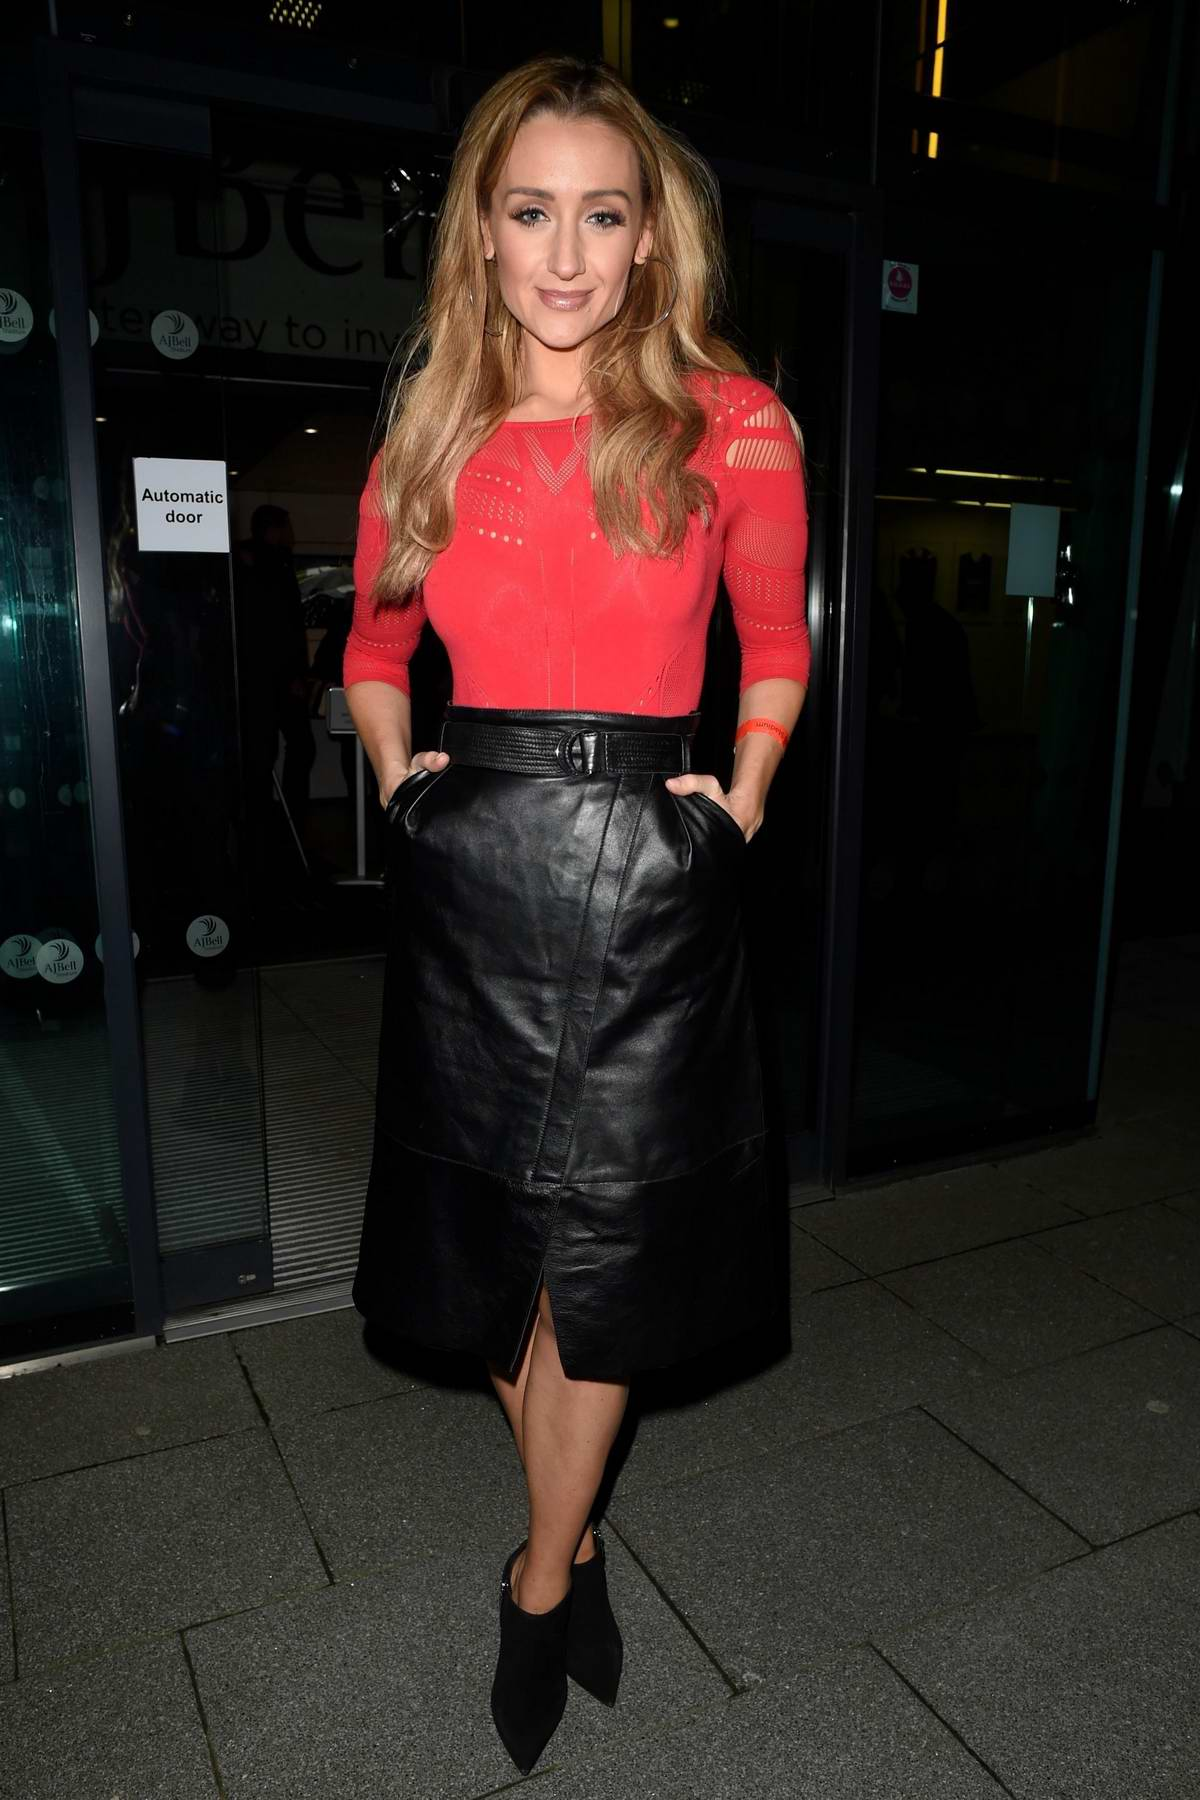 Catherine Tyldesley at AJ Bell Stadium in Manchester, UK